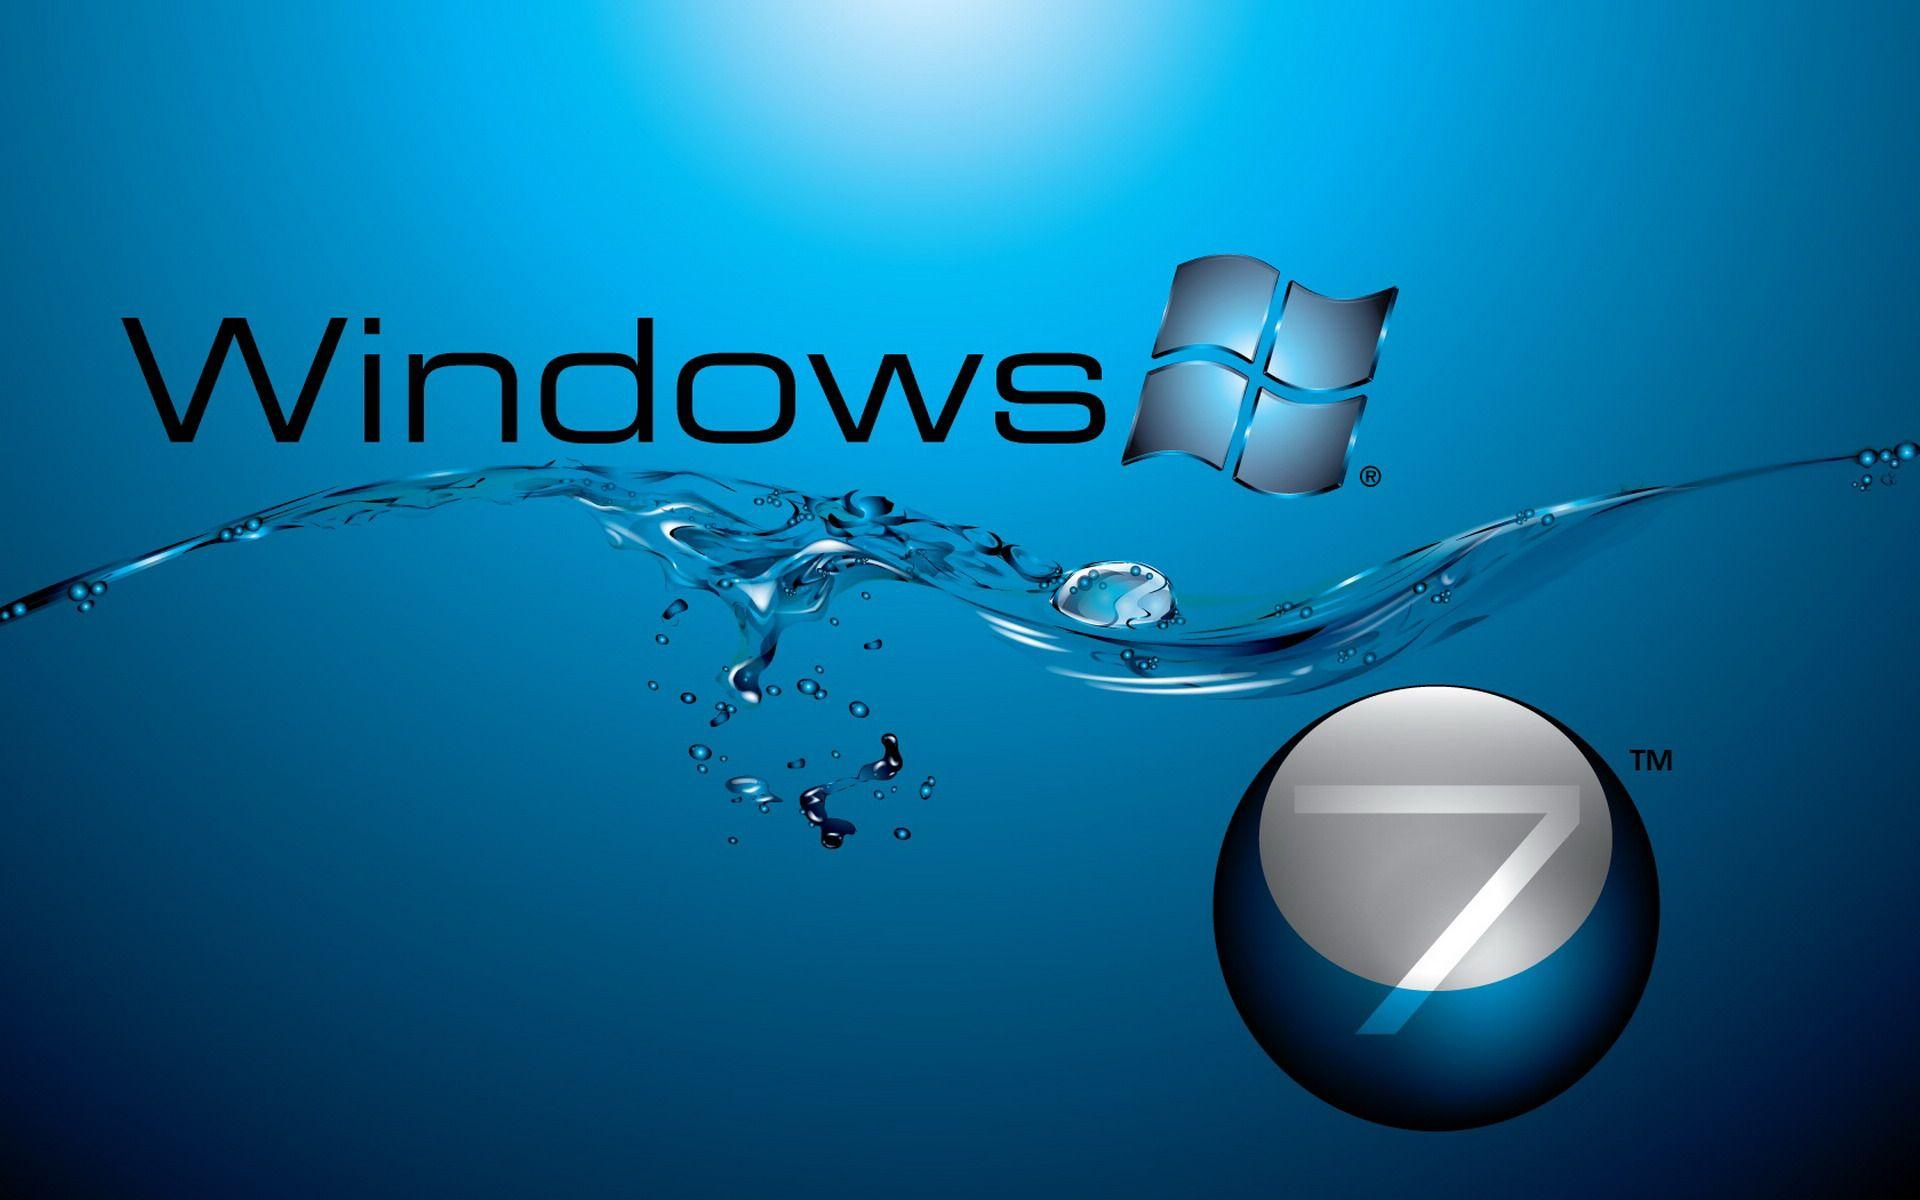 Free Win 7 Wallpapers Wallpaper Cave